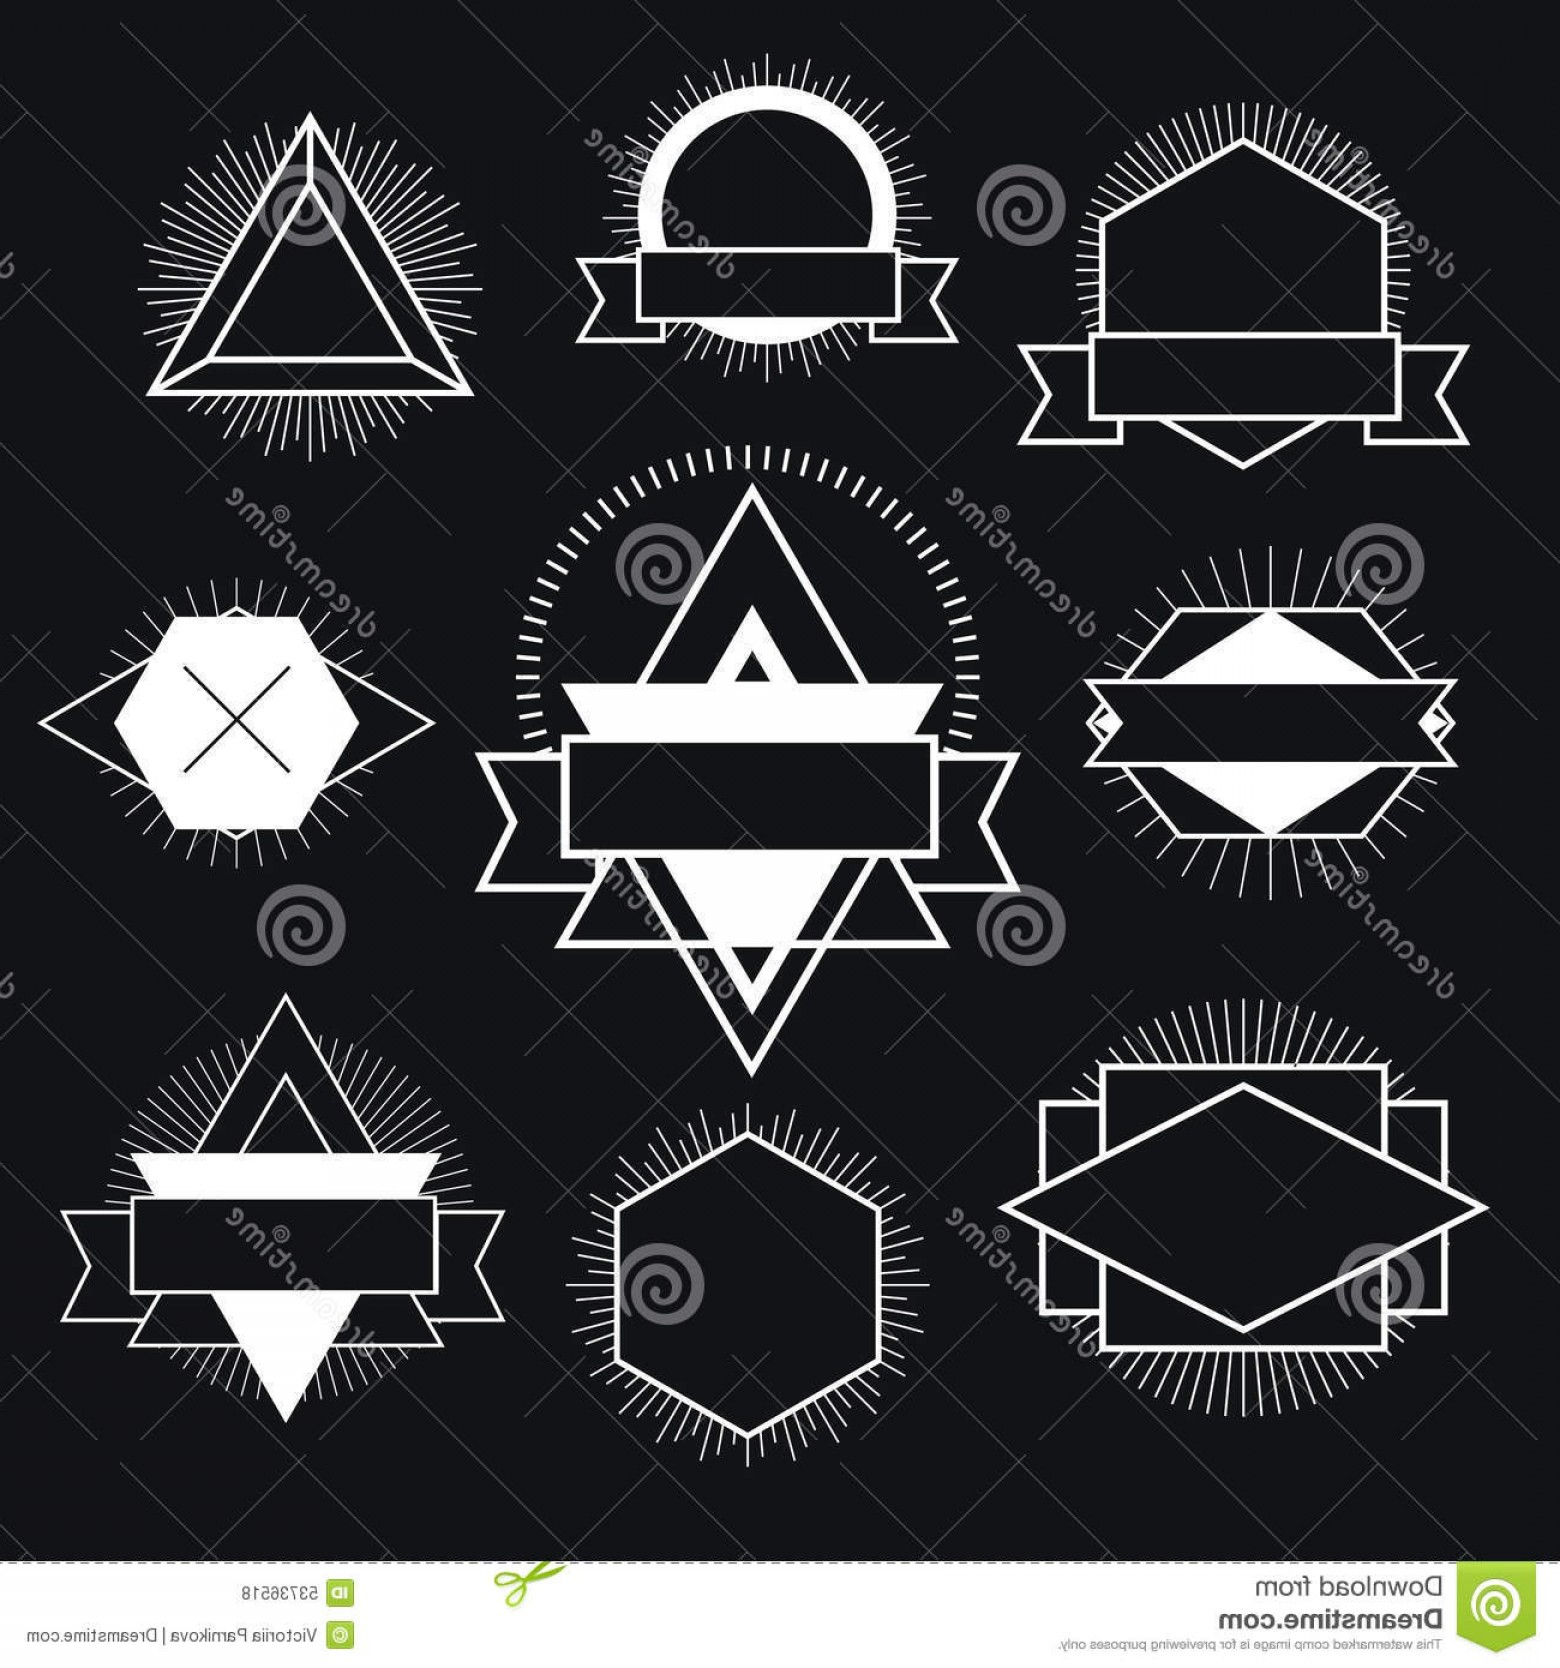 Free Vector Hipster: Stock Illustration Black White Hipster Logo Vector Isolated Illustration Image